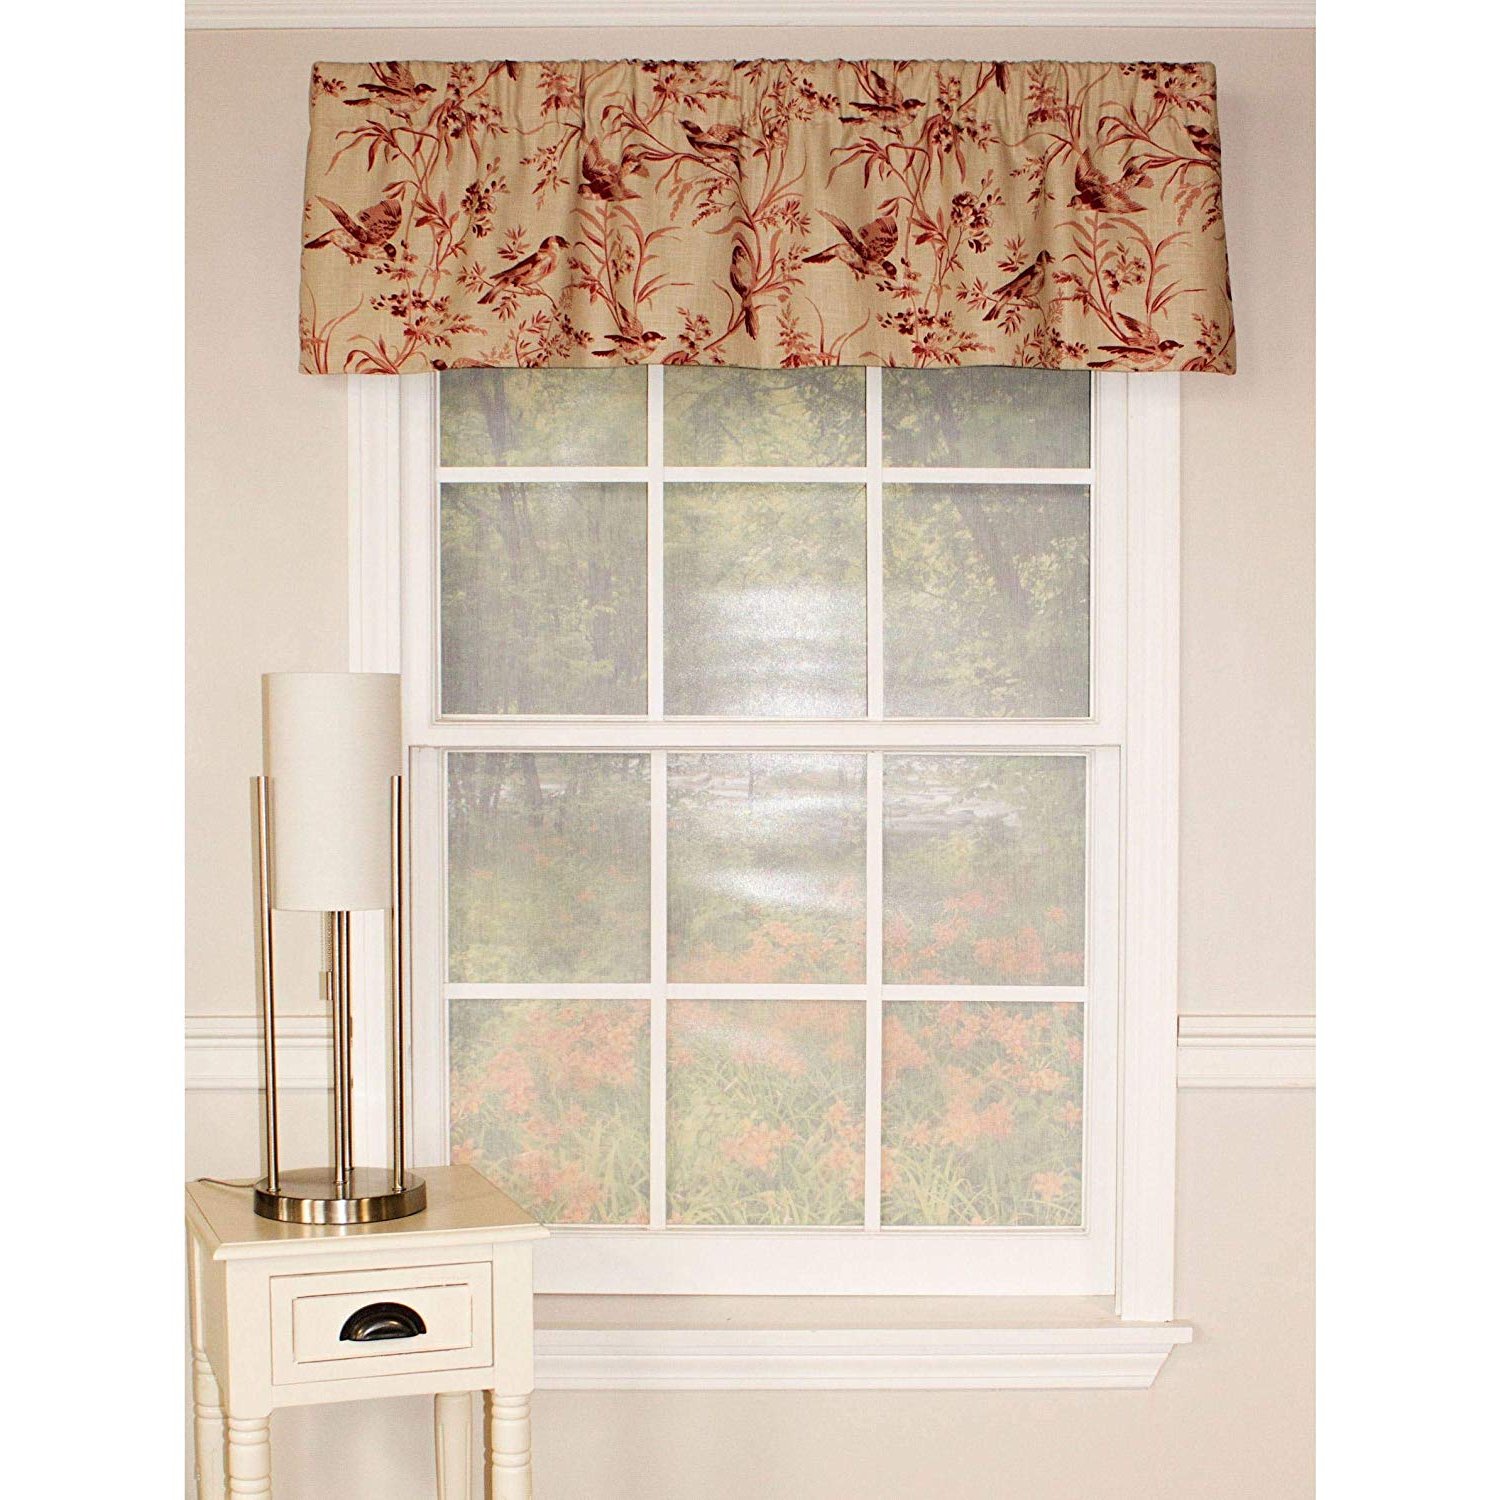 Popular Amazon: Rlf Home Aviary Toile Straight Valance: Home With Regard To Aviary Window Curtains (View 9 of 20)